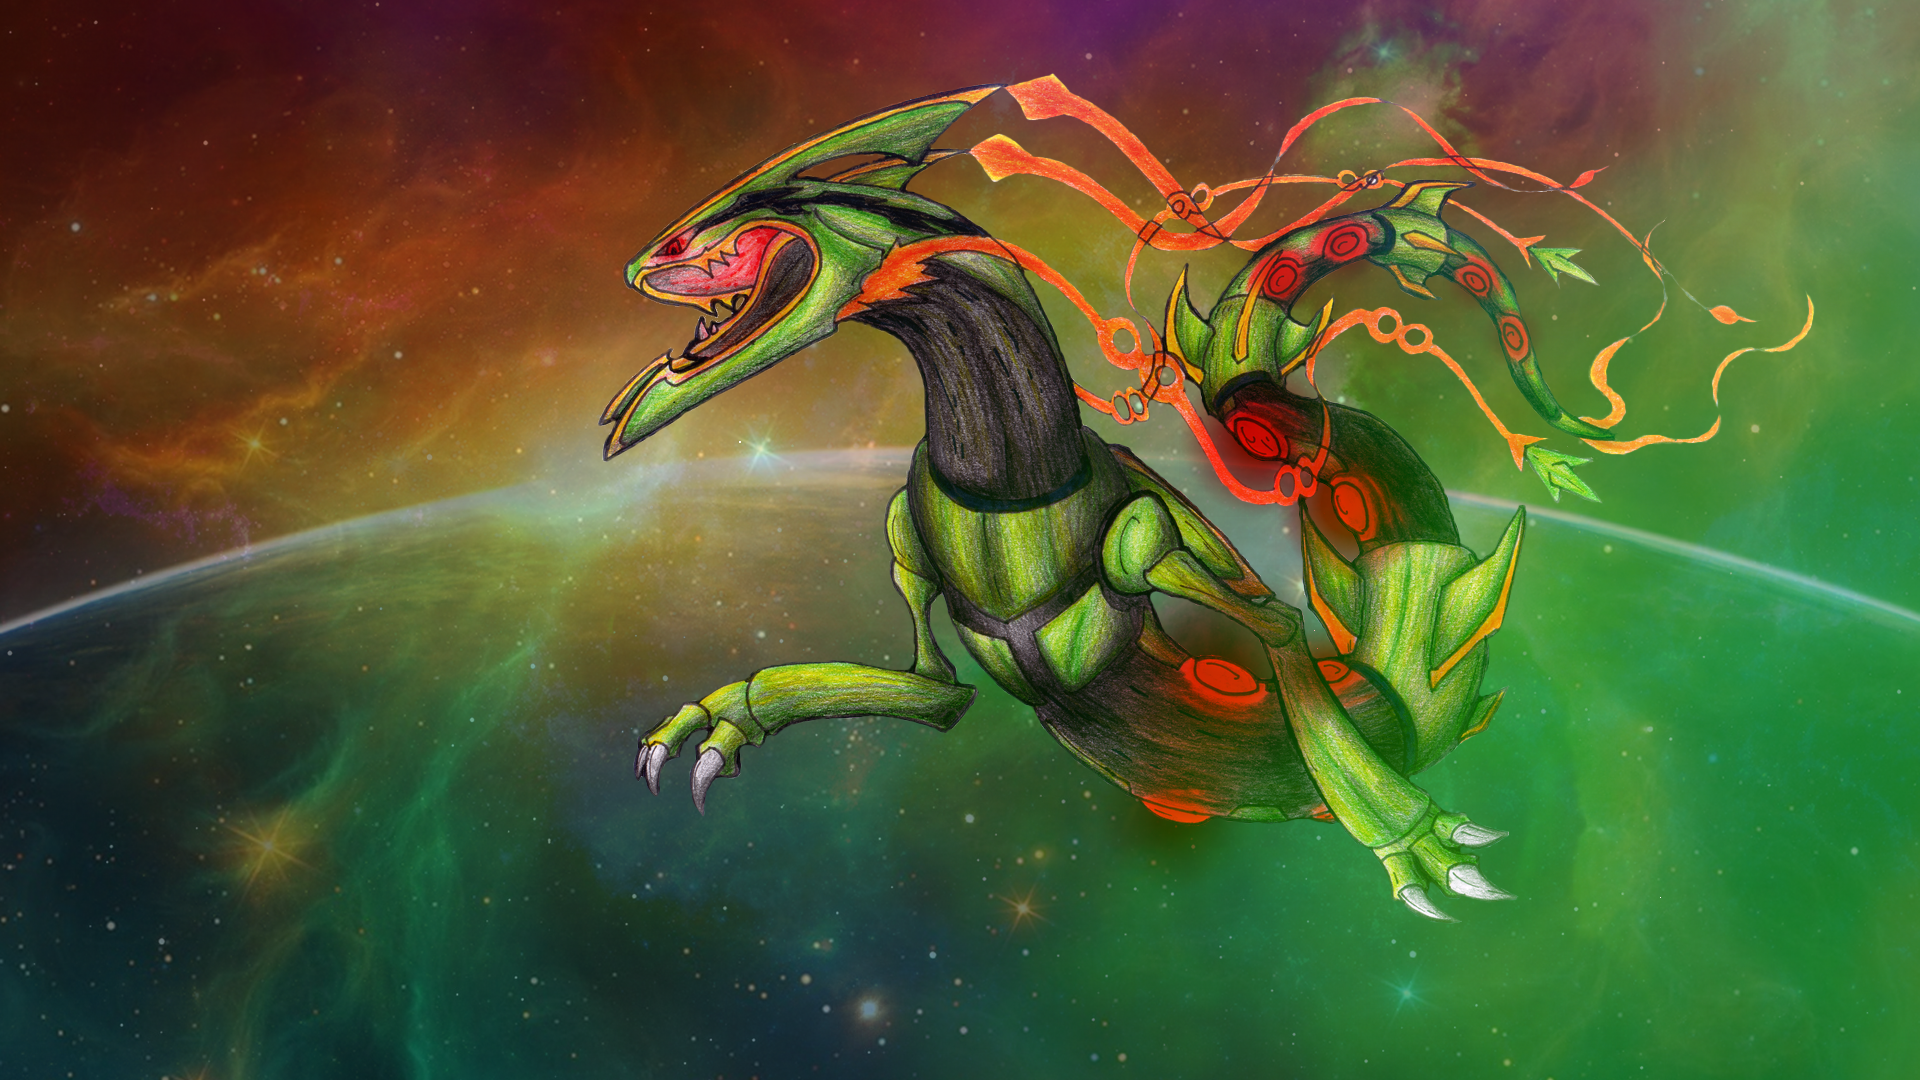 Space Roar (Mega-Rayquaza FanArt)-Wallpaper by lululock71 ...